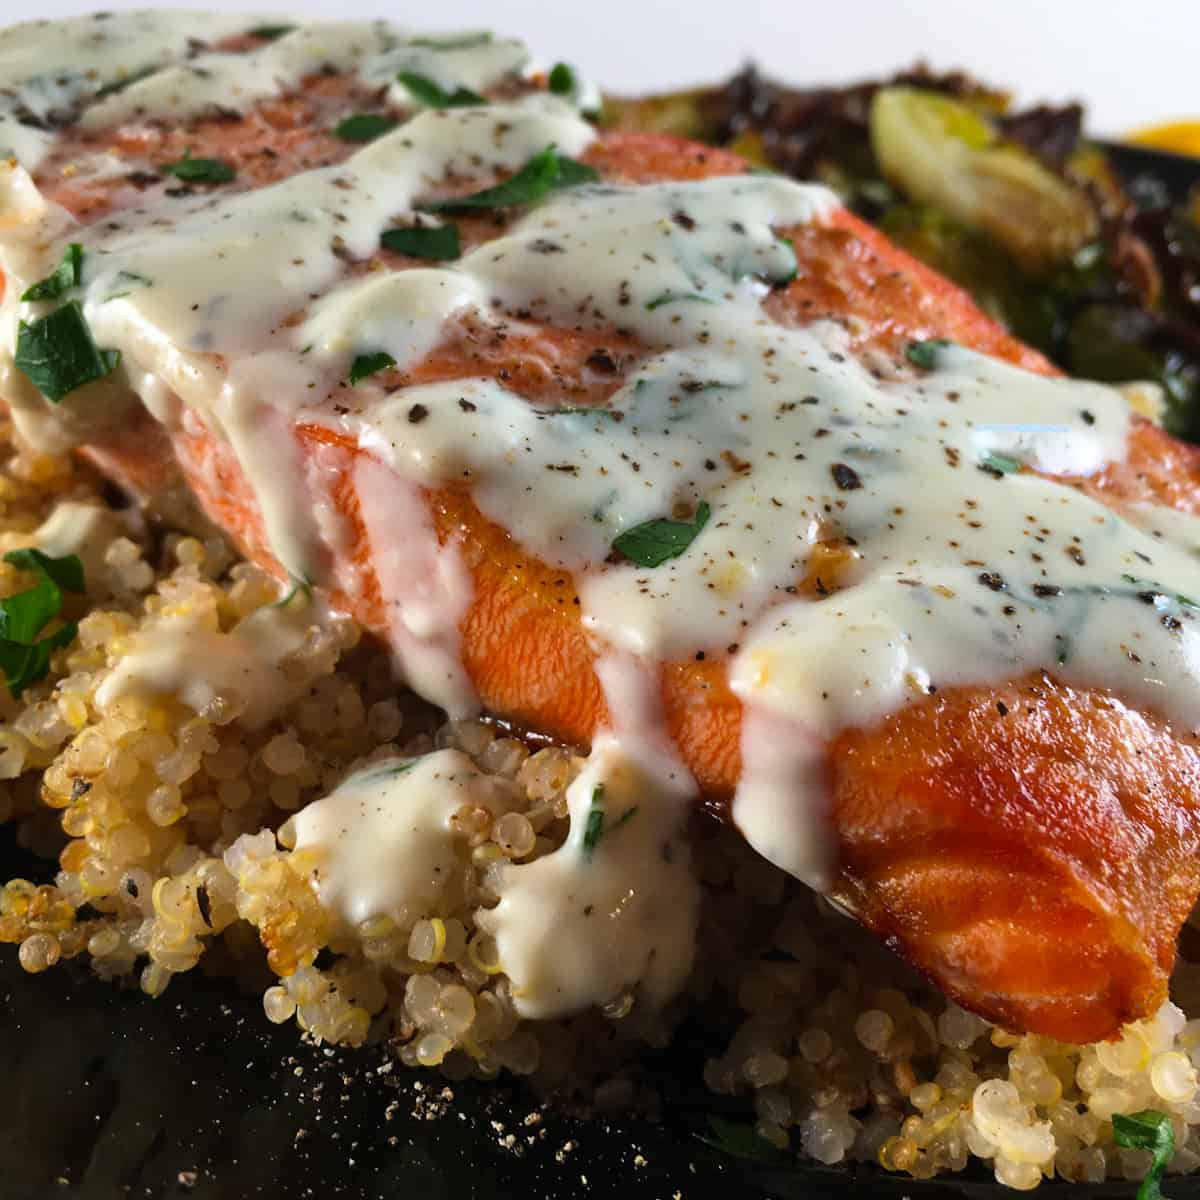 cooked from frozen salmon fillets